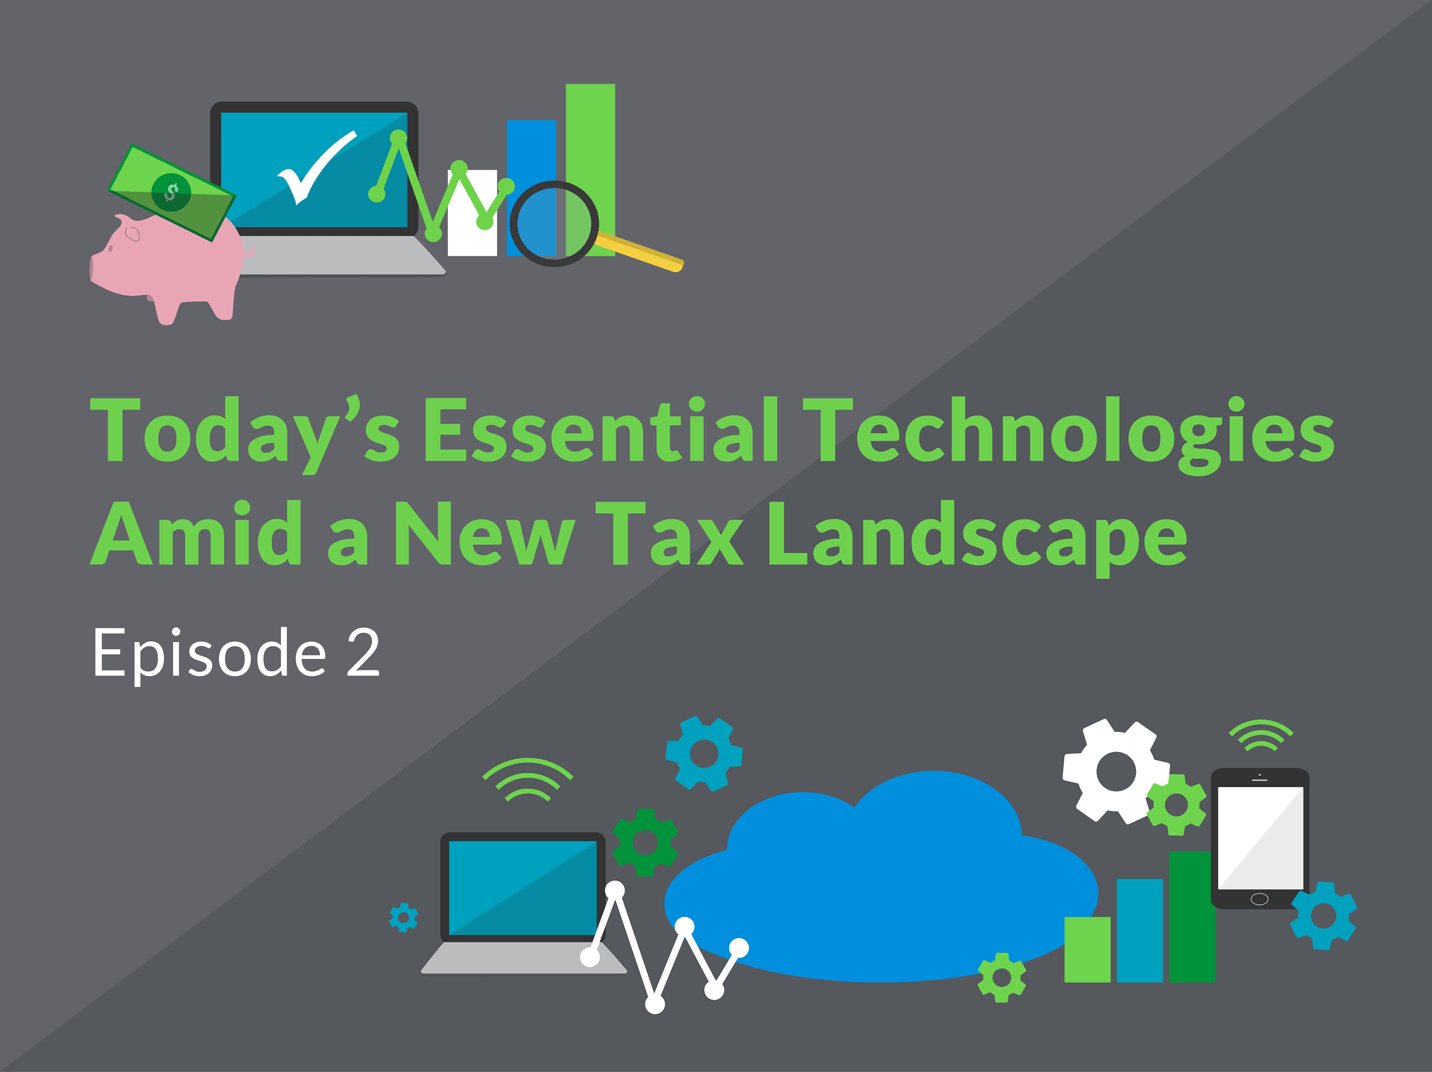 Today's Essential Technologies Amid a New Tax Landscape